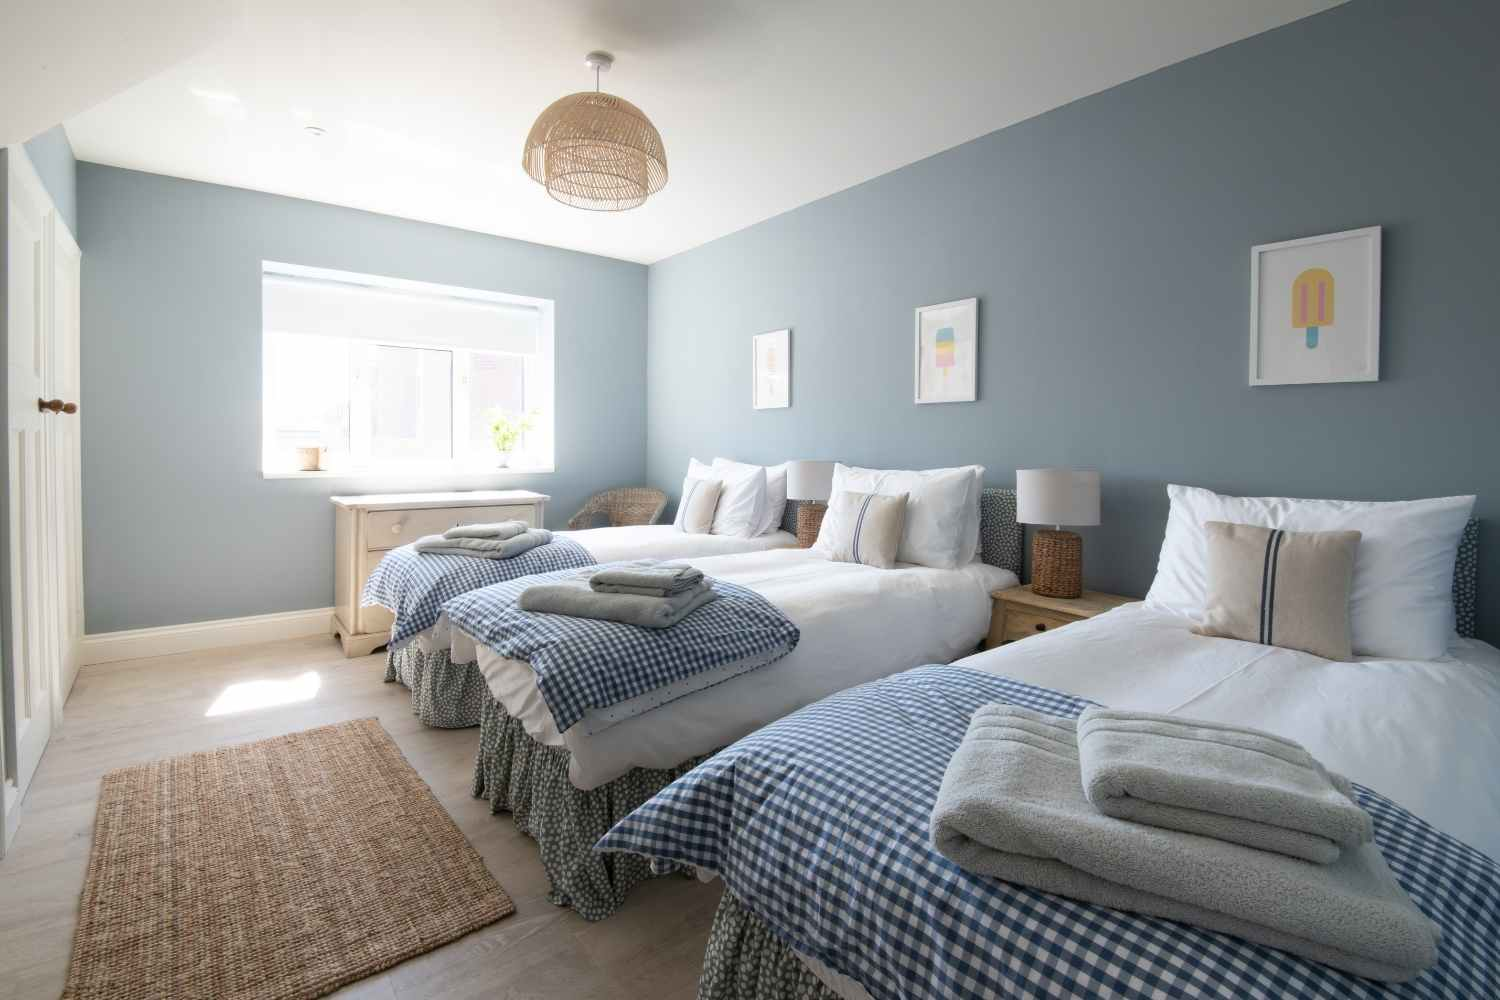 Bedroom Five - Perfect for families